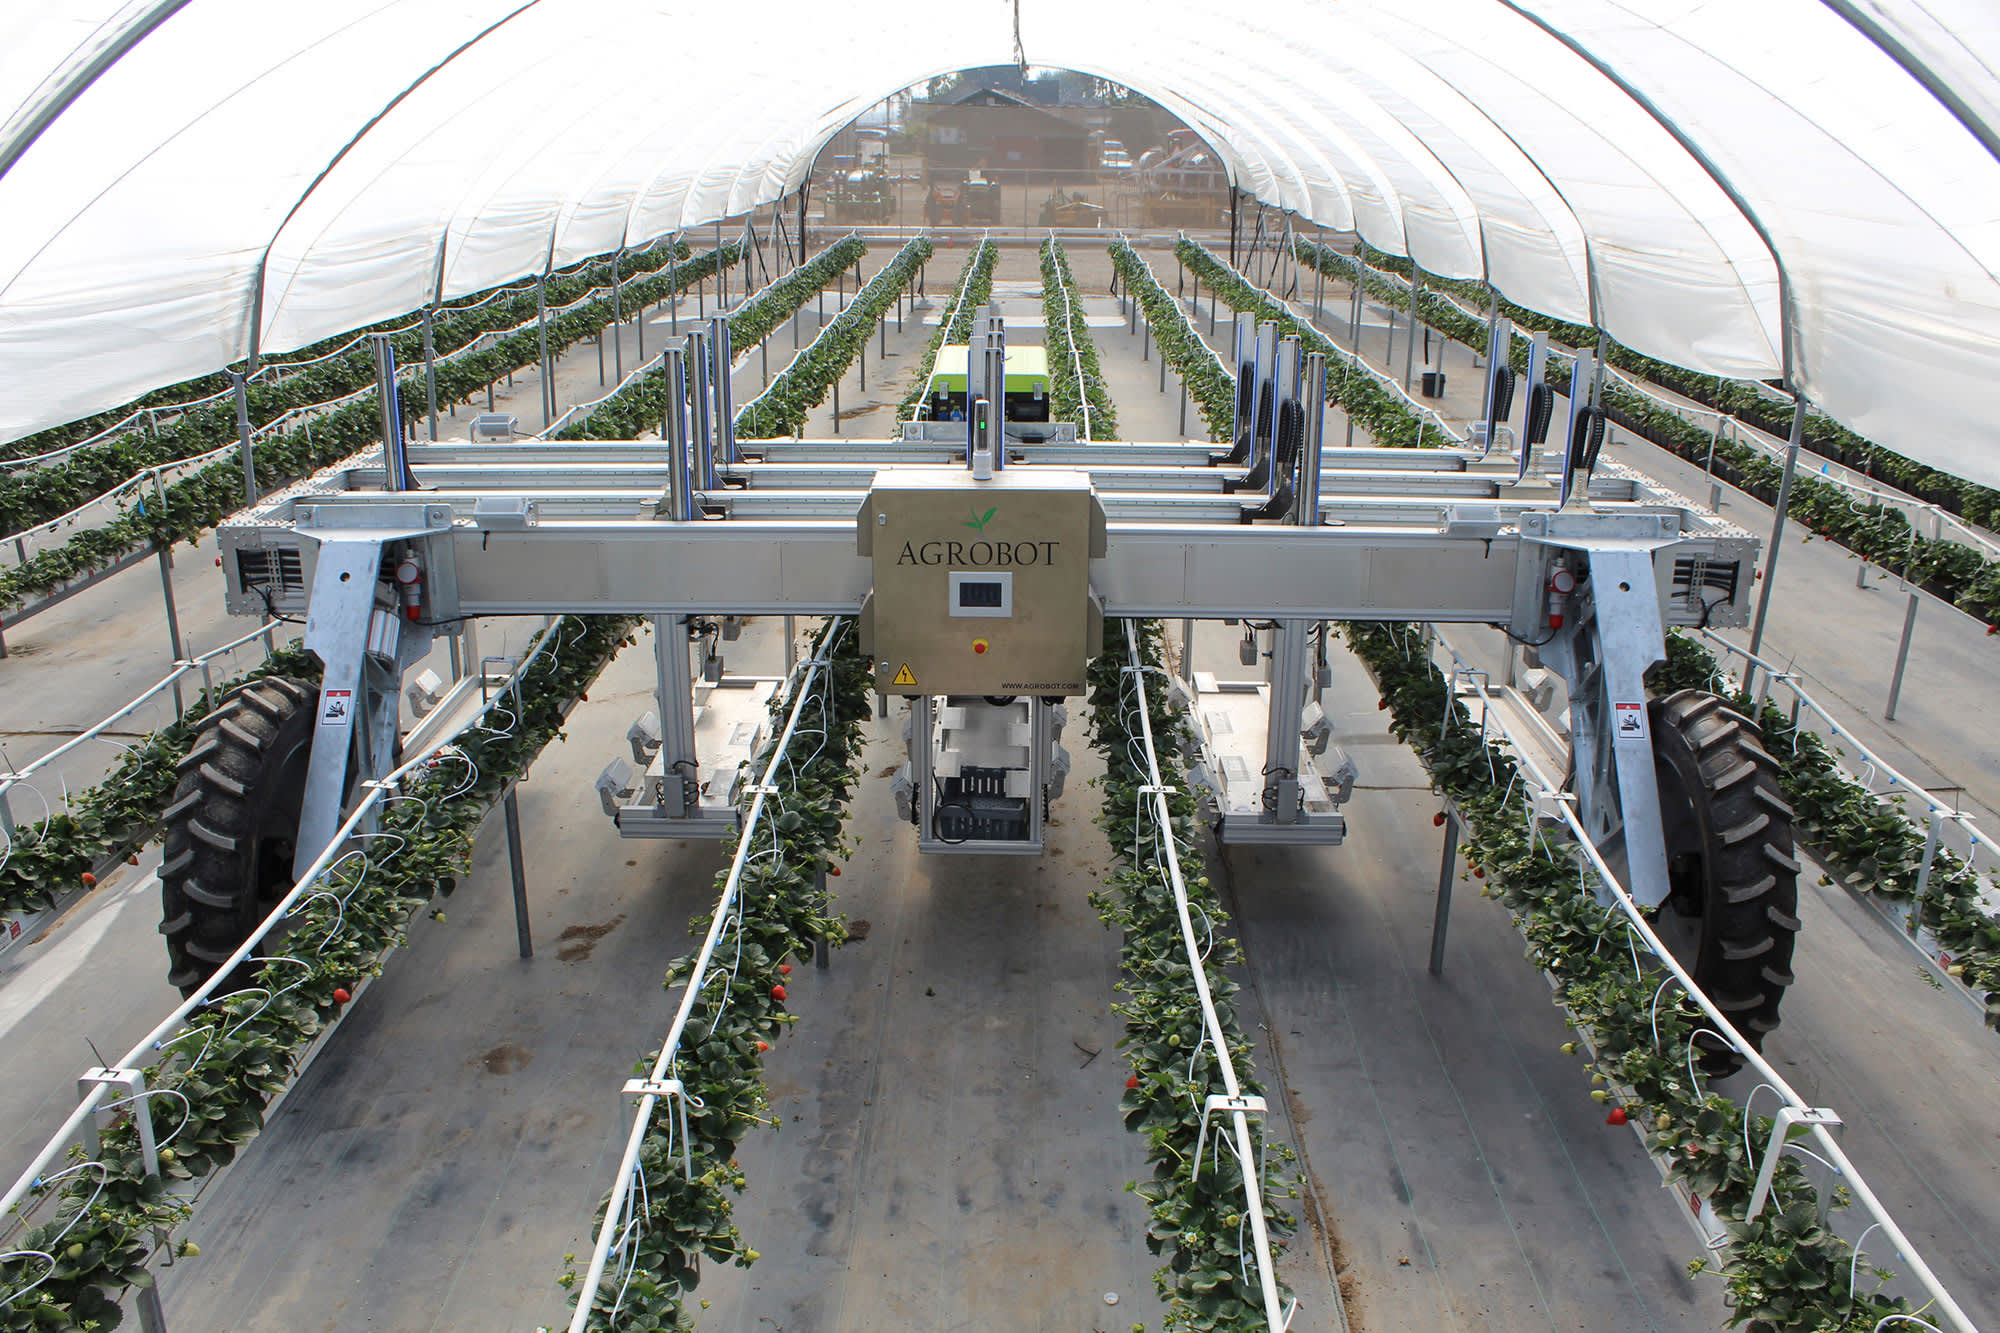 Wave of agriculture robotics holds potential to ease farm labor crunch